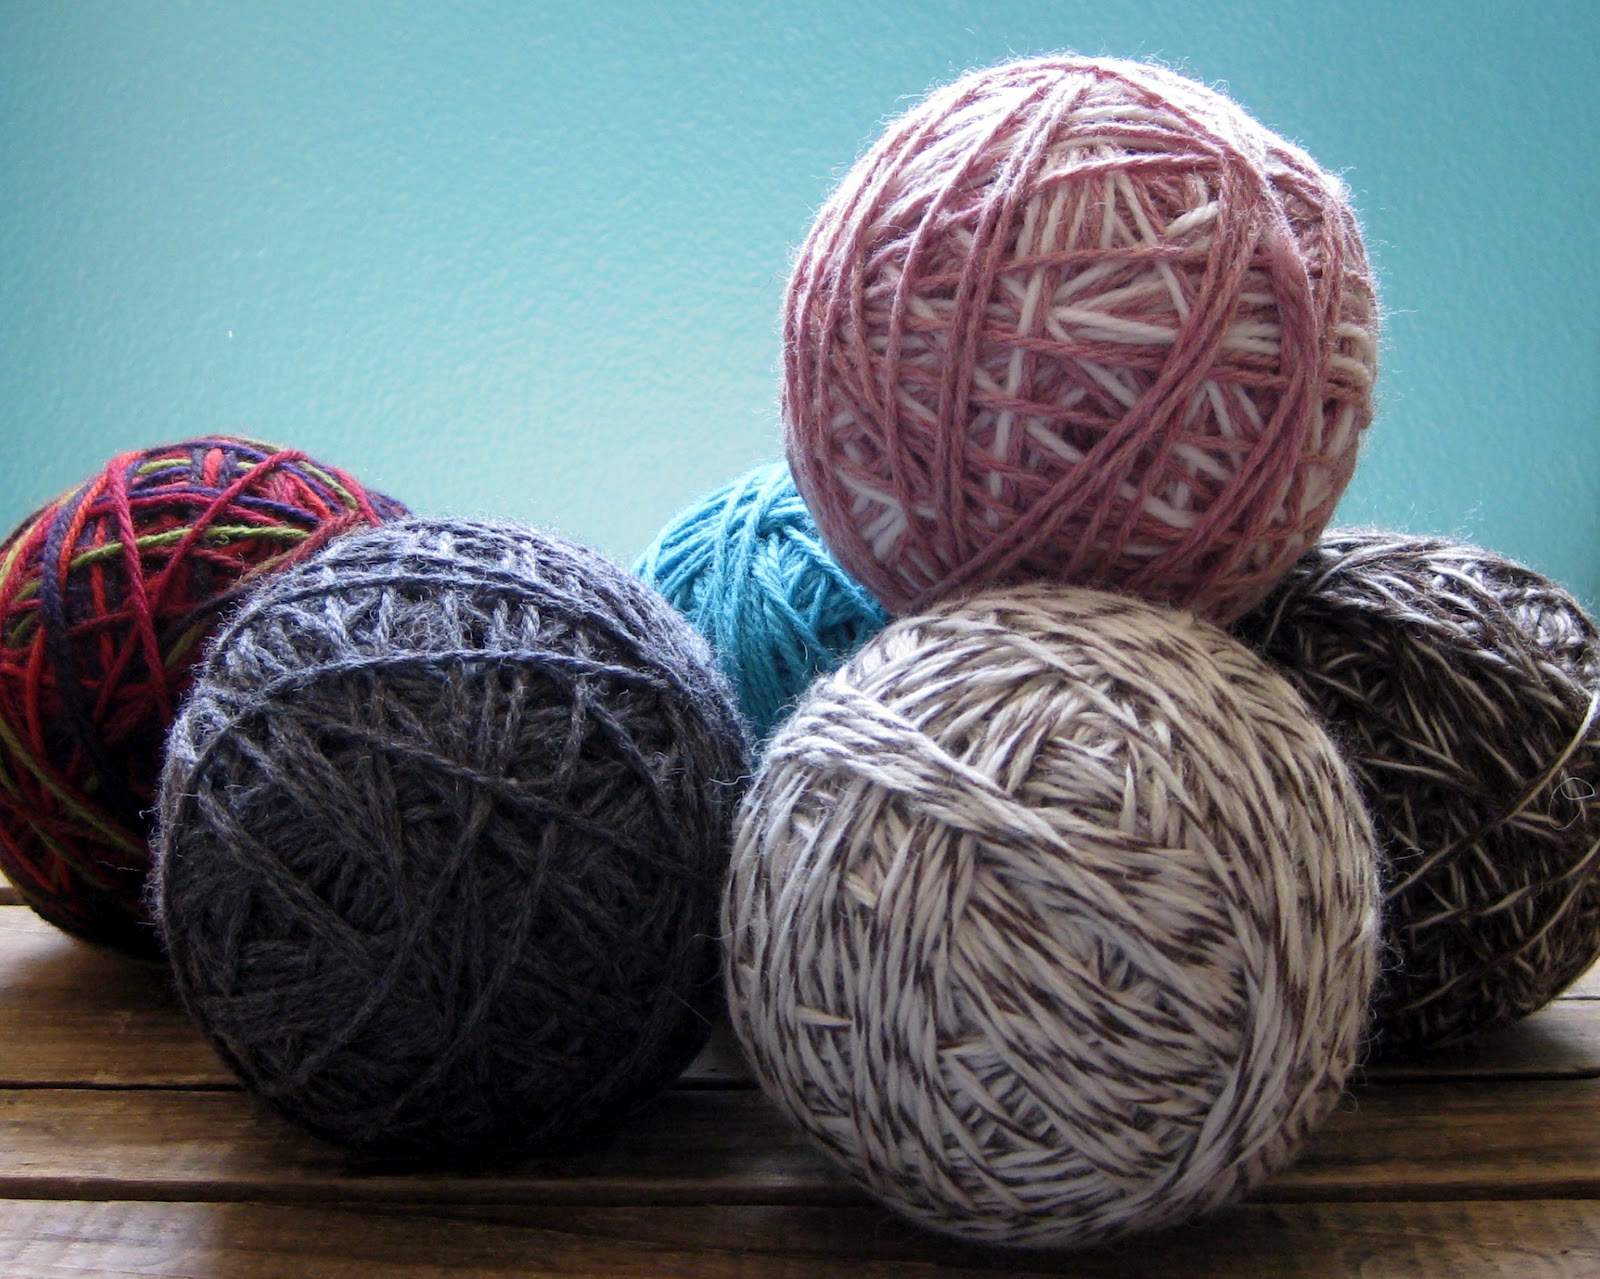 ball of yarn - photo #6